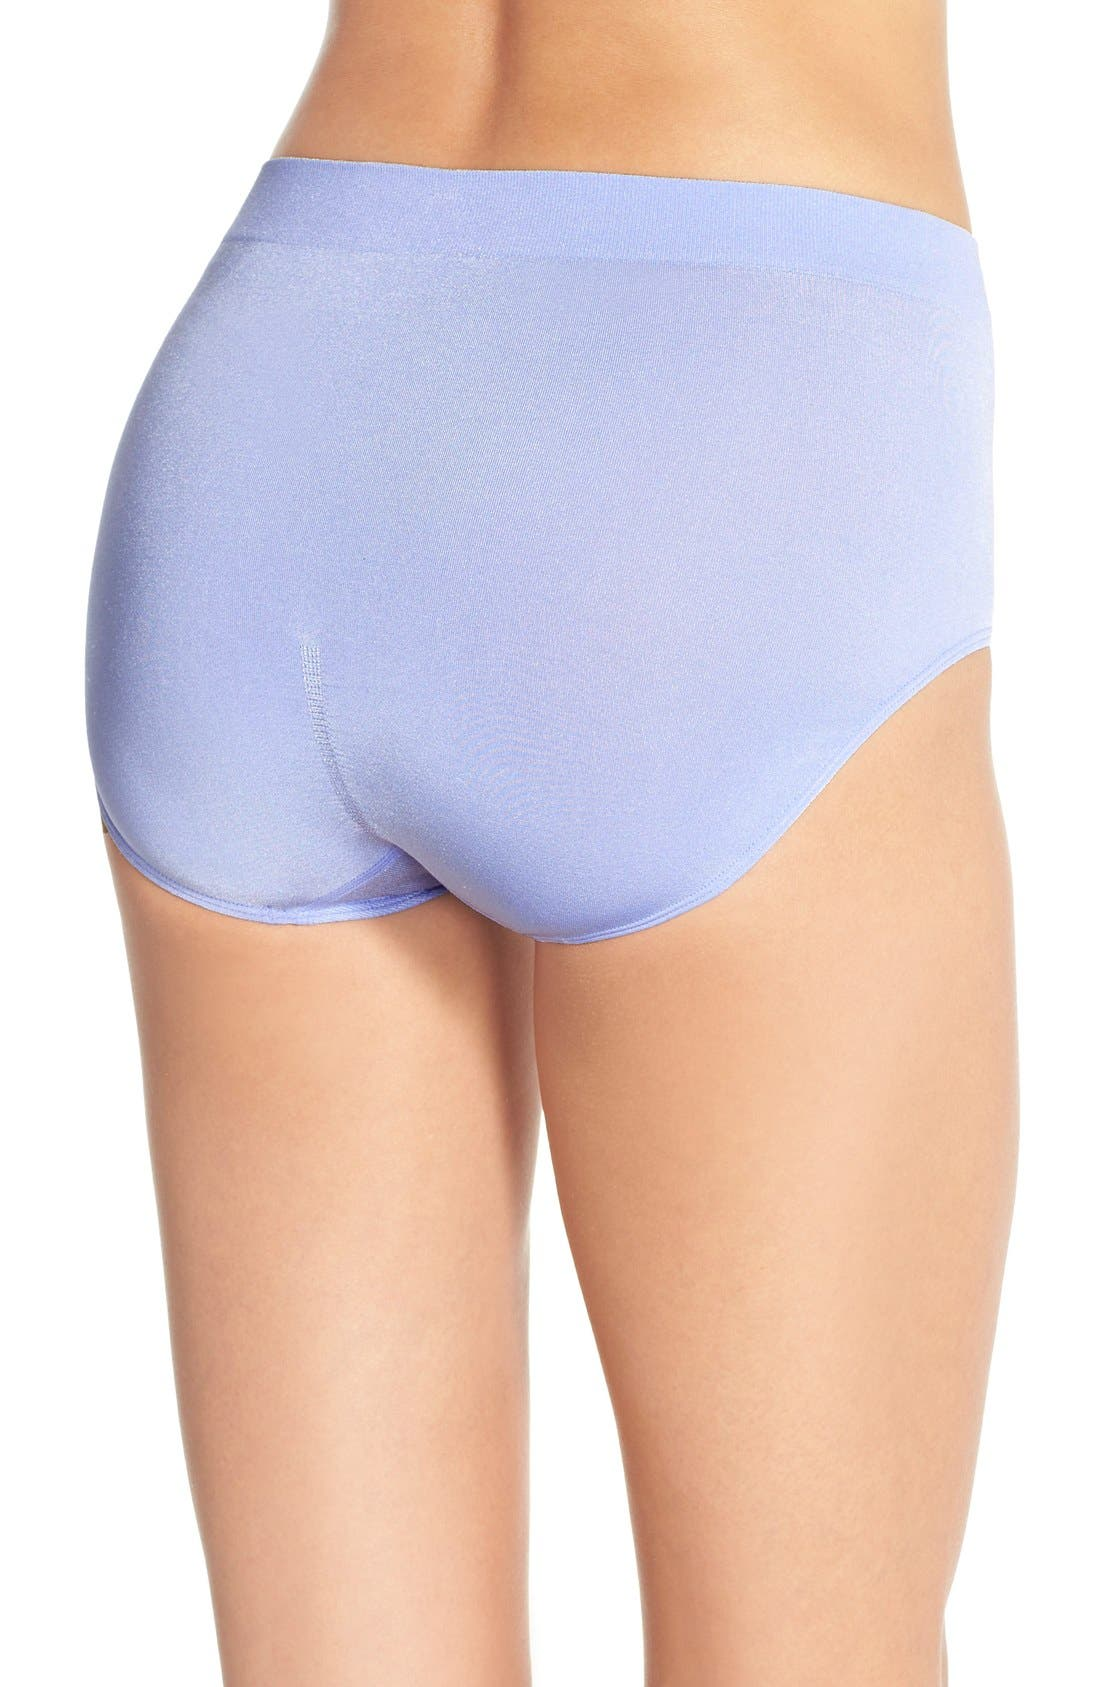 B Smooth Briefs,                             Alternate thumbnail 216, color,